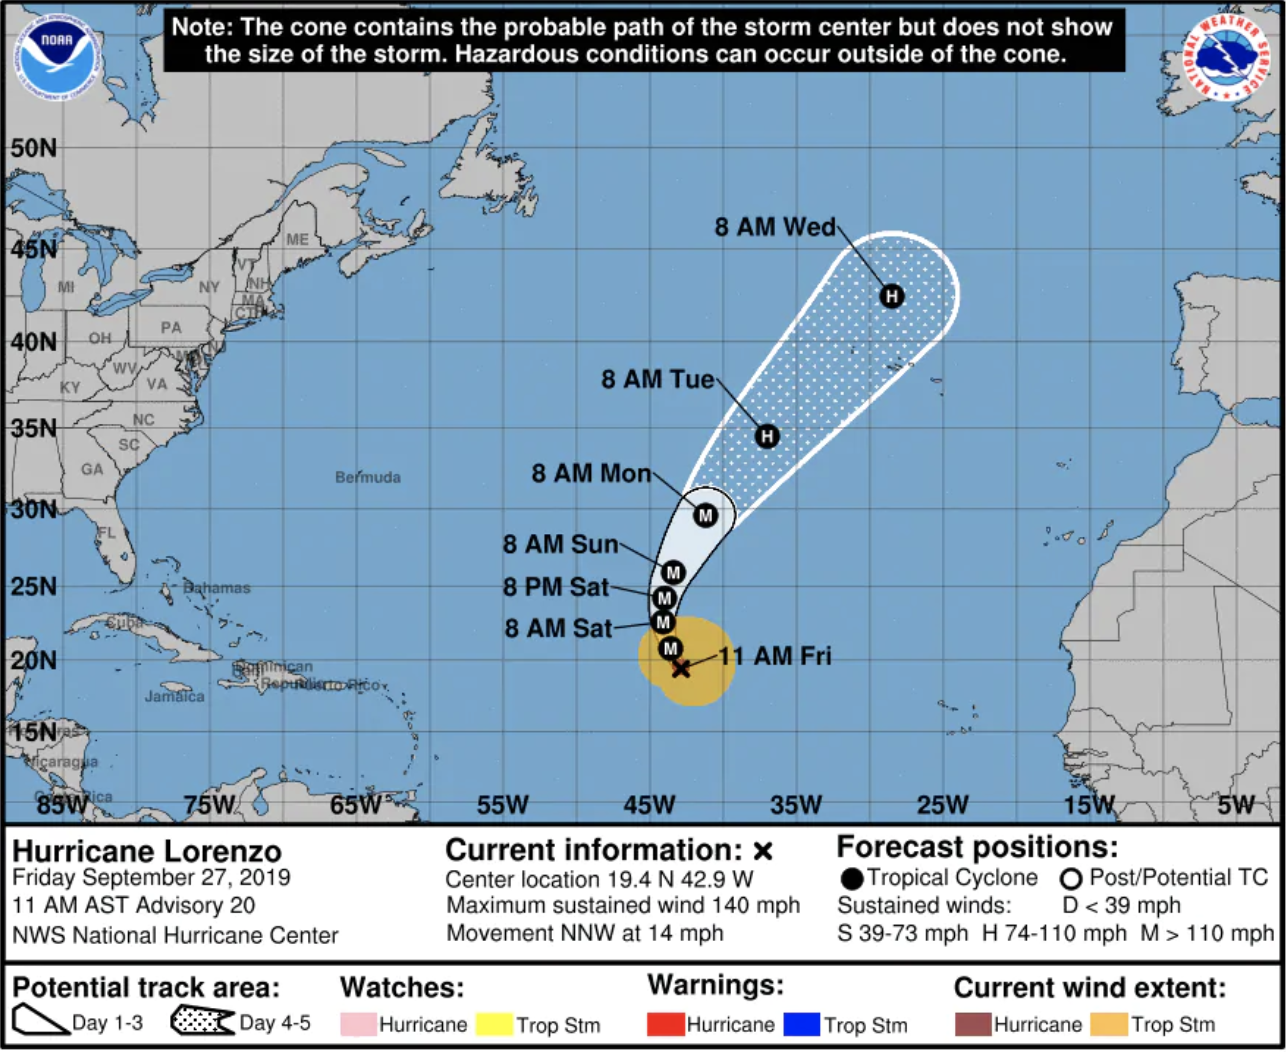 Cat 5 hurricane unprecedented for being so far north, east